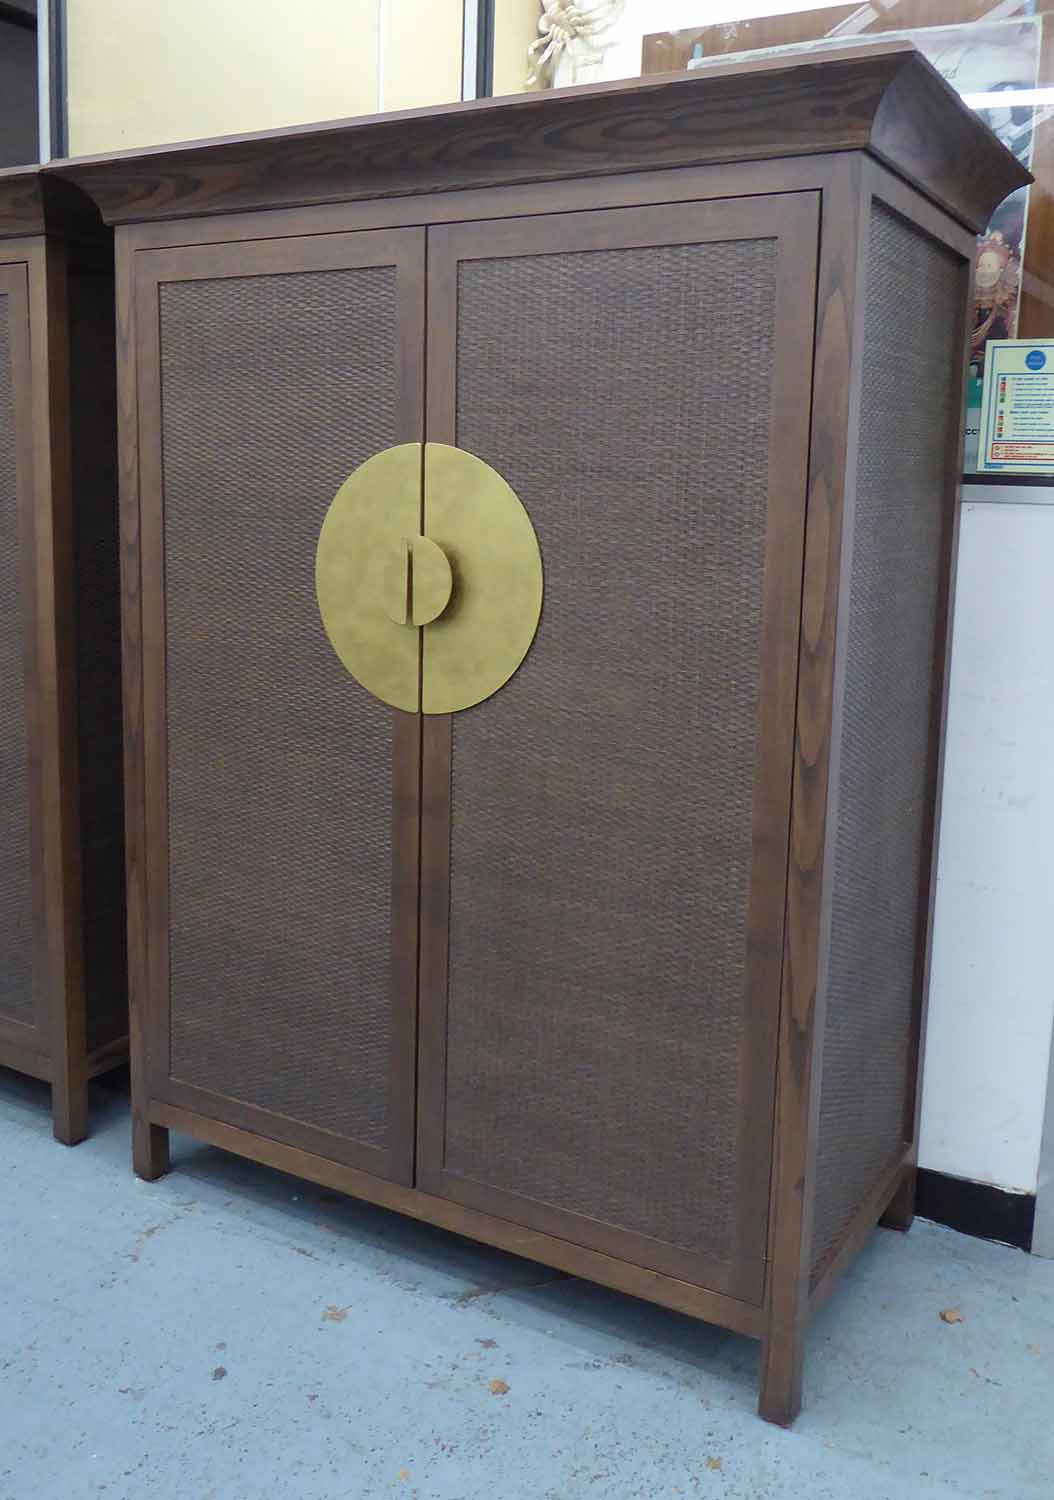 Lot 4 - MEDIA CABINET, in the oriental style, with fold away door mechanism, 136cm W x 68cm D x 170cm H.